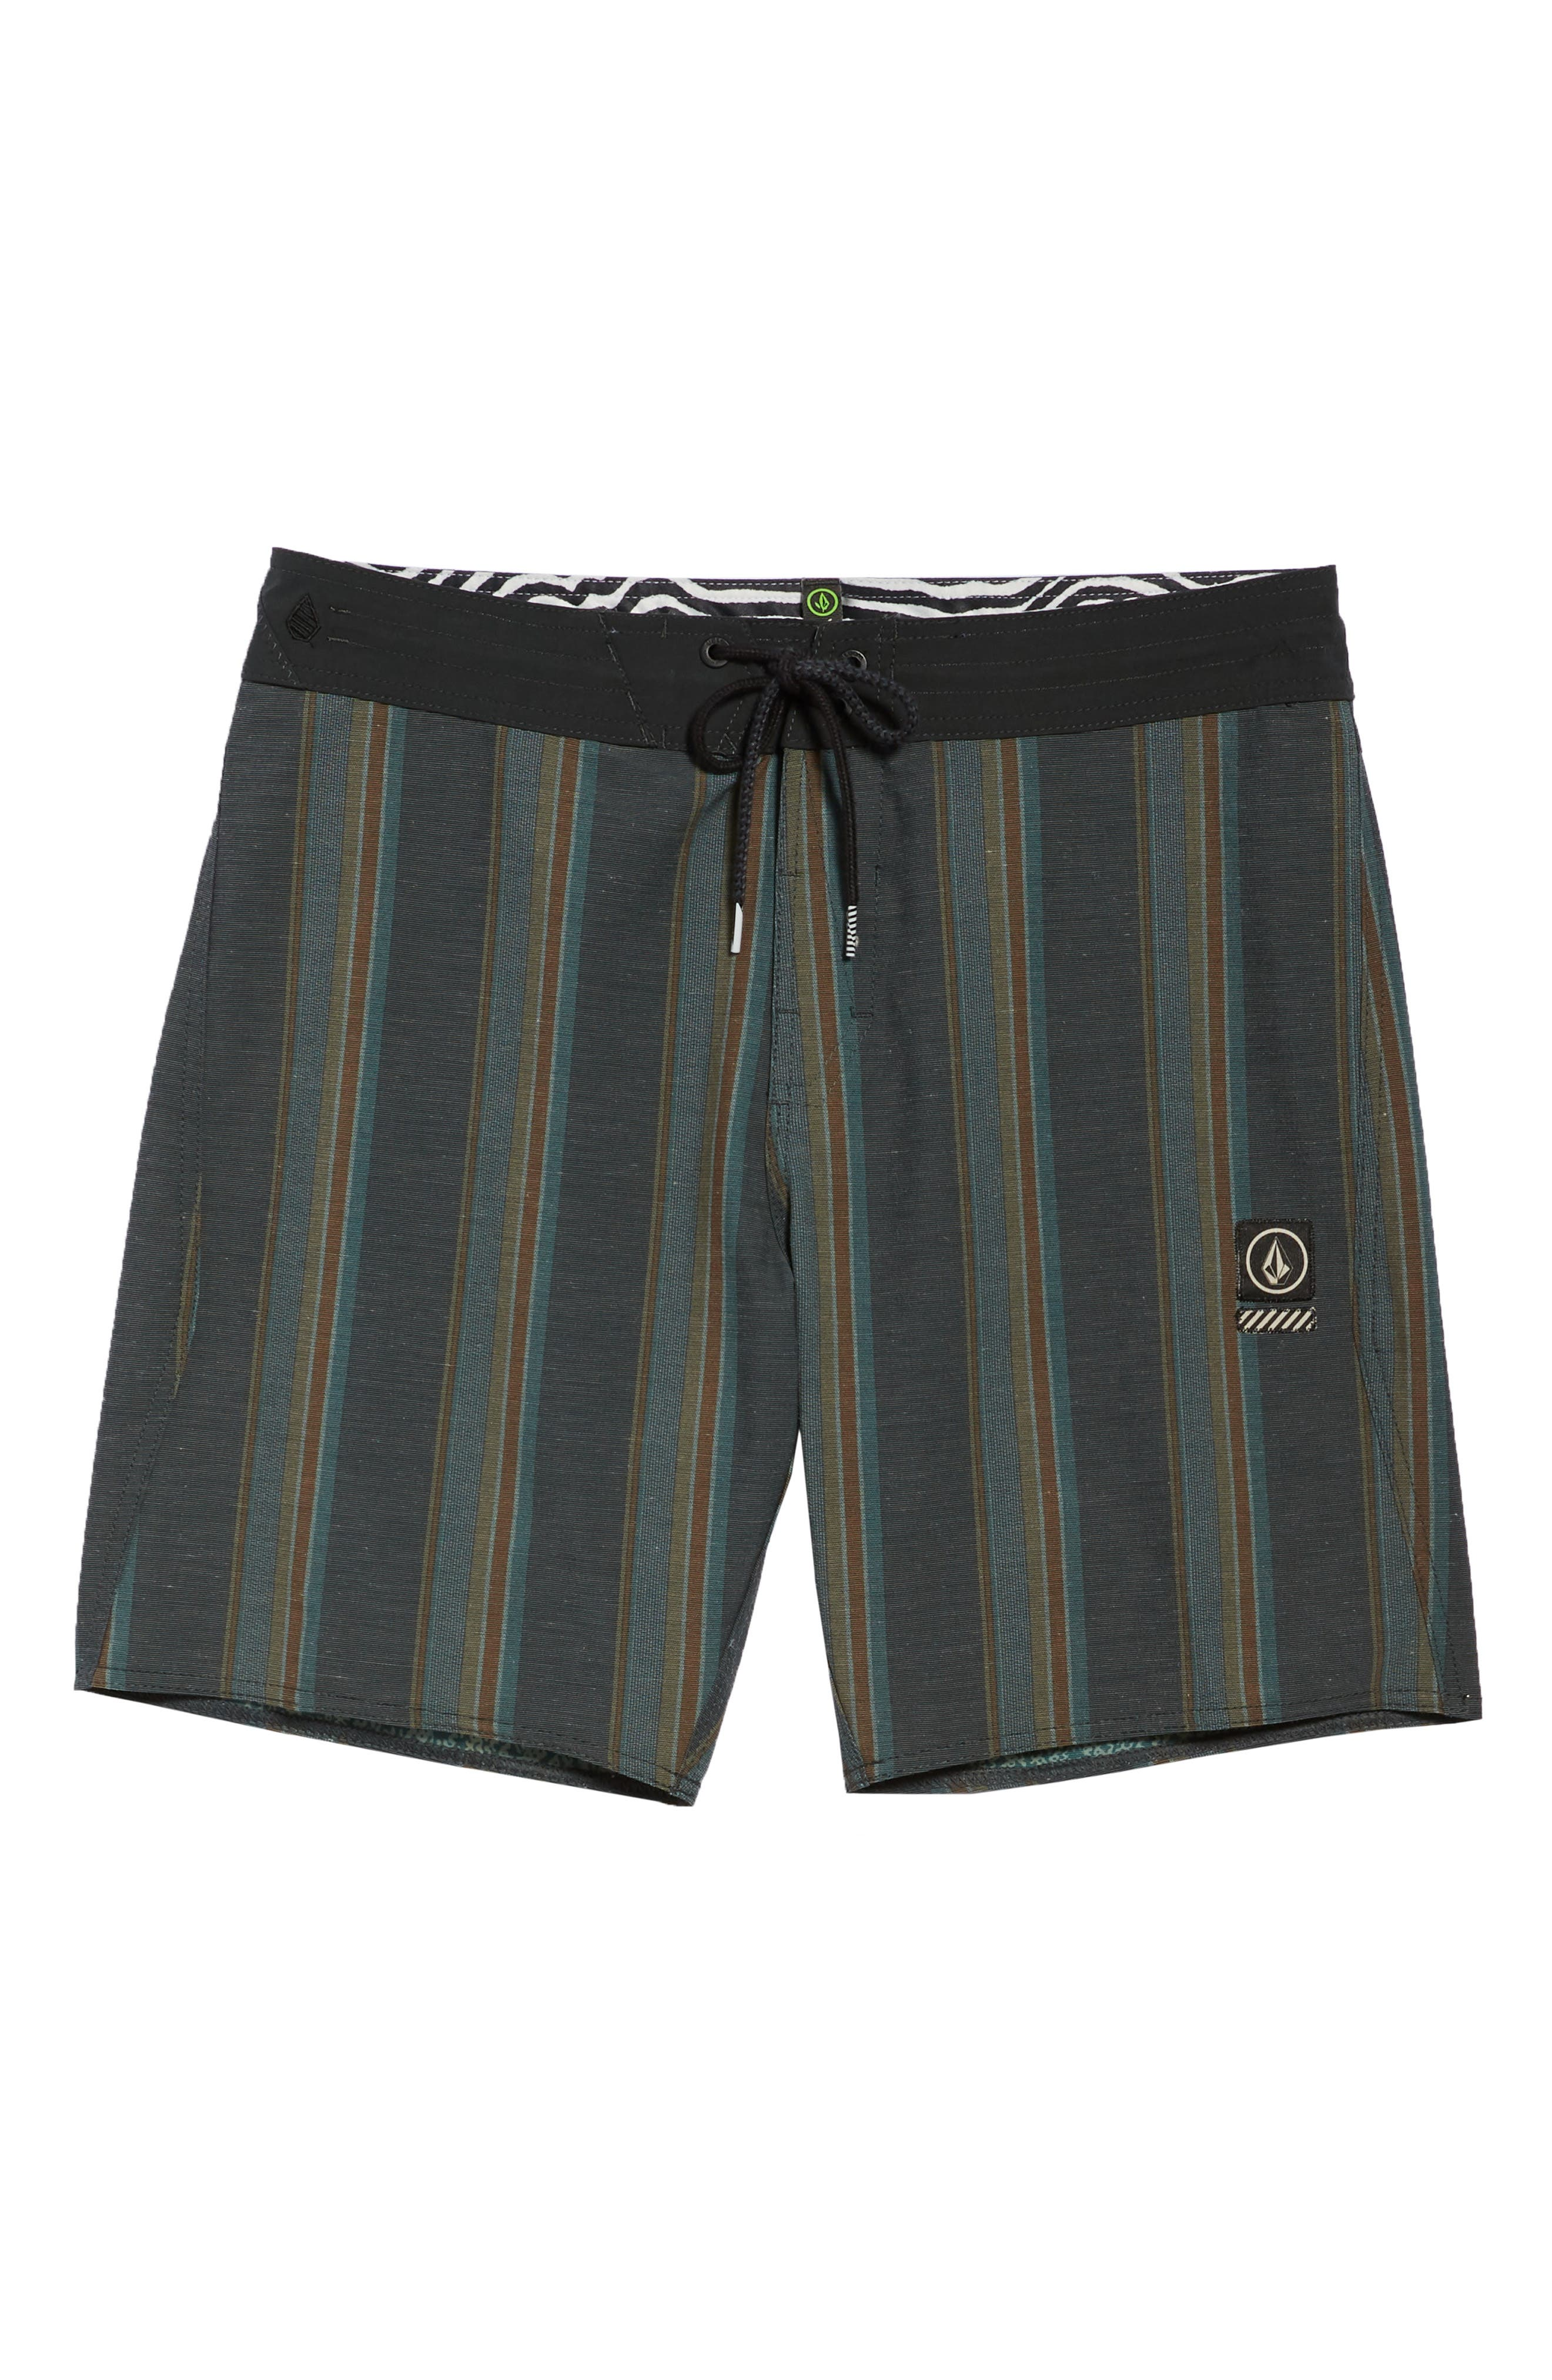 Estate Stoney Boardshorts,                             Alternate thumbnail 6, color,                             PINE